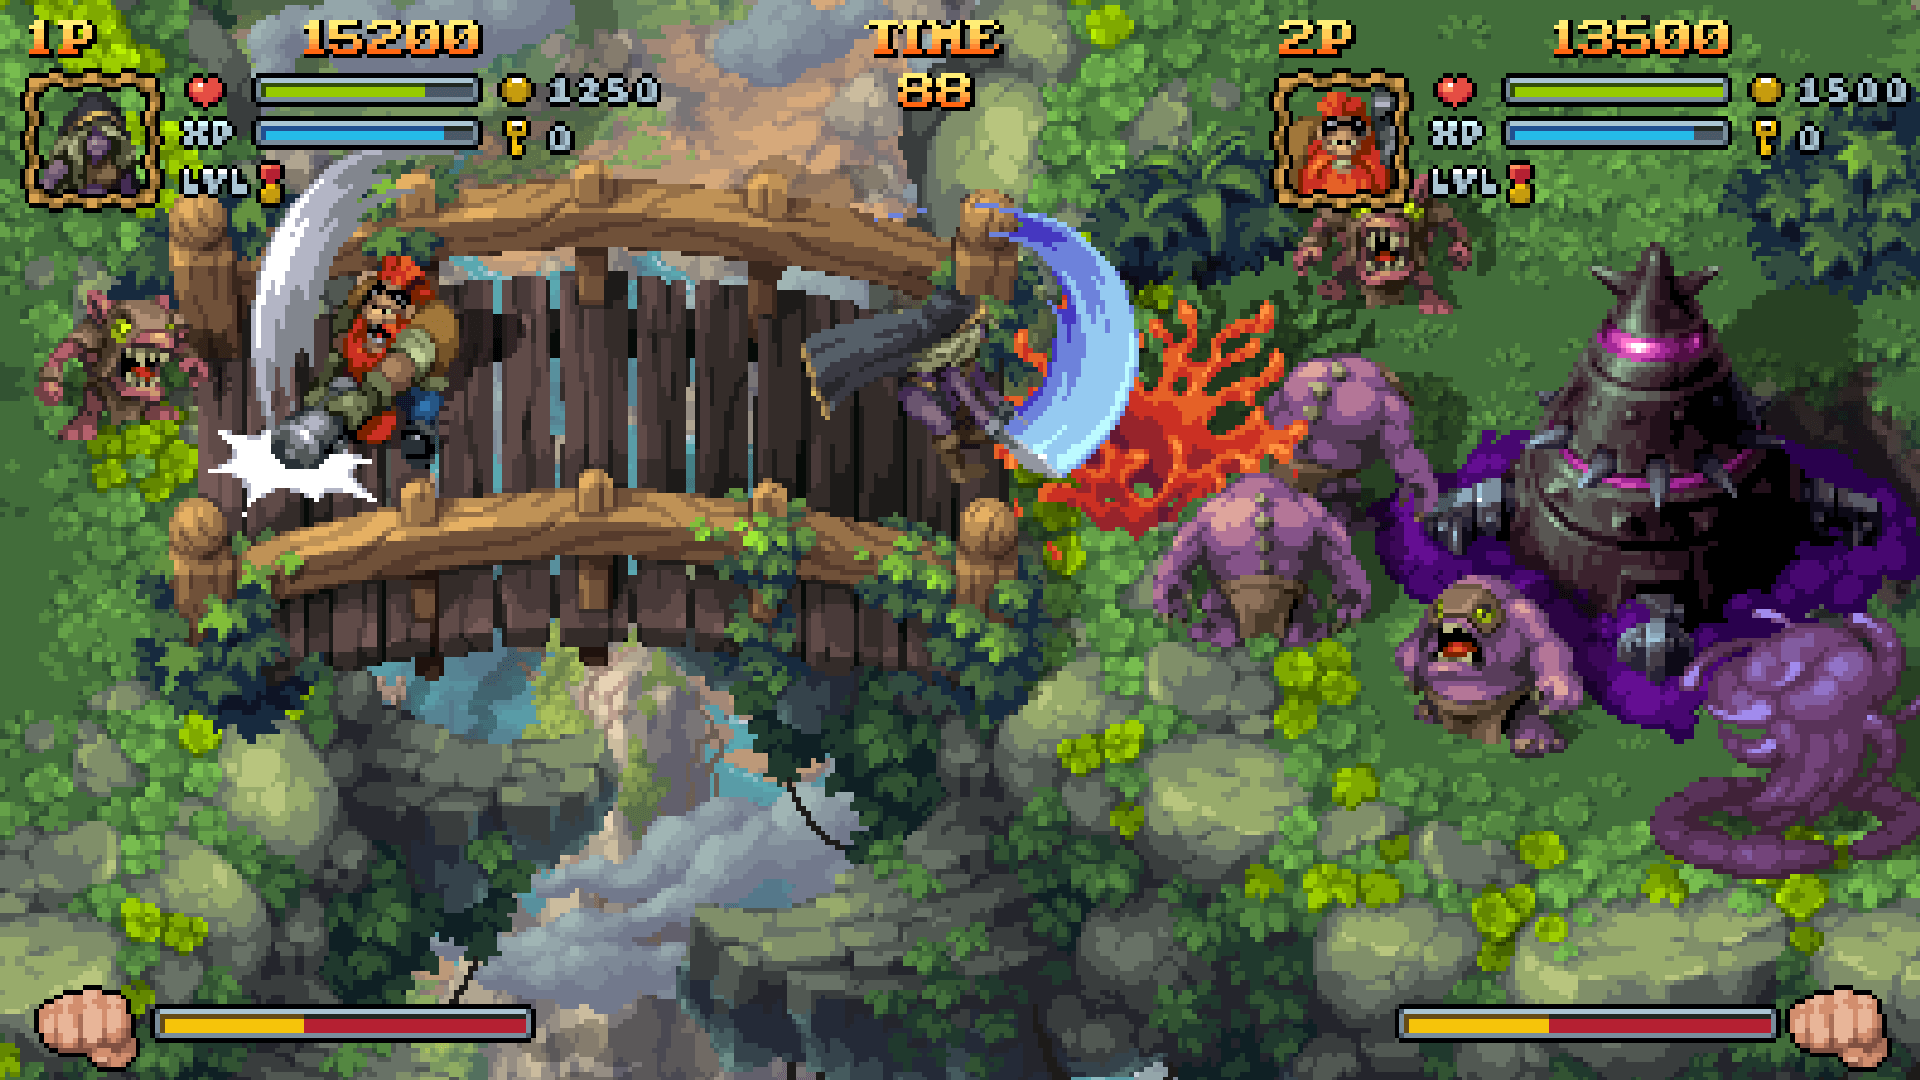 Numskull Games to publish Kickstarted Battle Axe on Xbox One, PS4, Switch and PC  Currently running the crowdfunding route over on Kickstarter, the pixel art retro affair that is Battle Axe already looked set to become a certainty. Today though comes news that Numskull Games have picked up the publishing rights, with a view to pushing the game out to Xbox One, PS4, Nintendo Switch and PC. At time …   #Axe #Battle #Games #Kickstarted #Numskull #PS4 #Publish #Switch